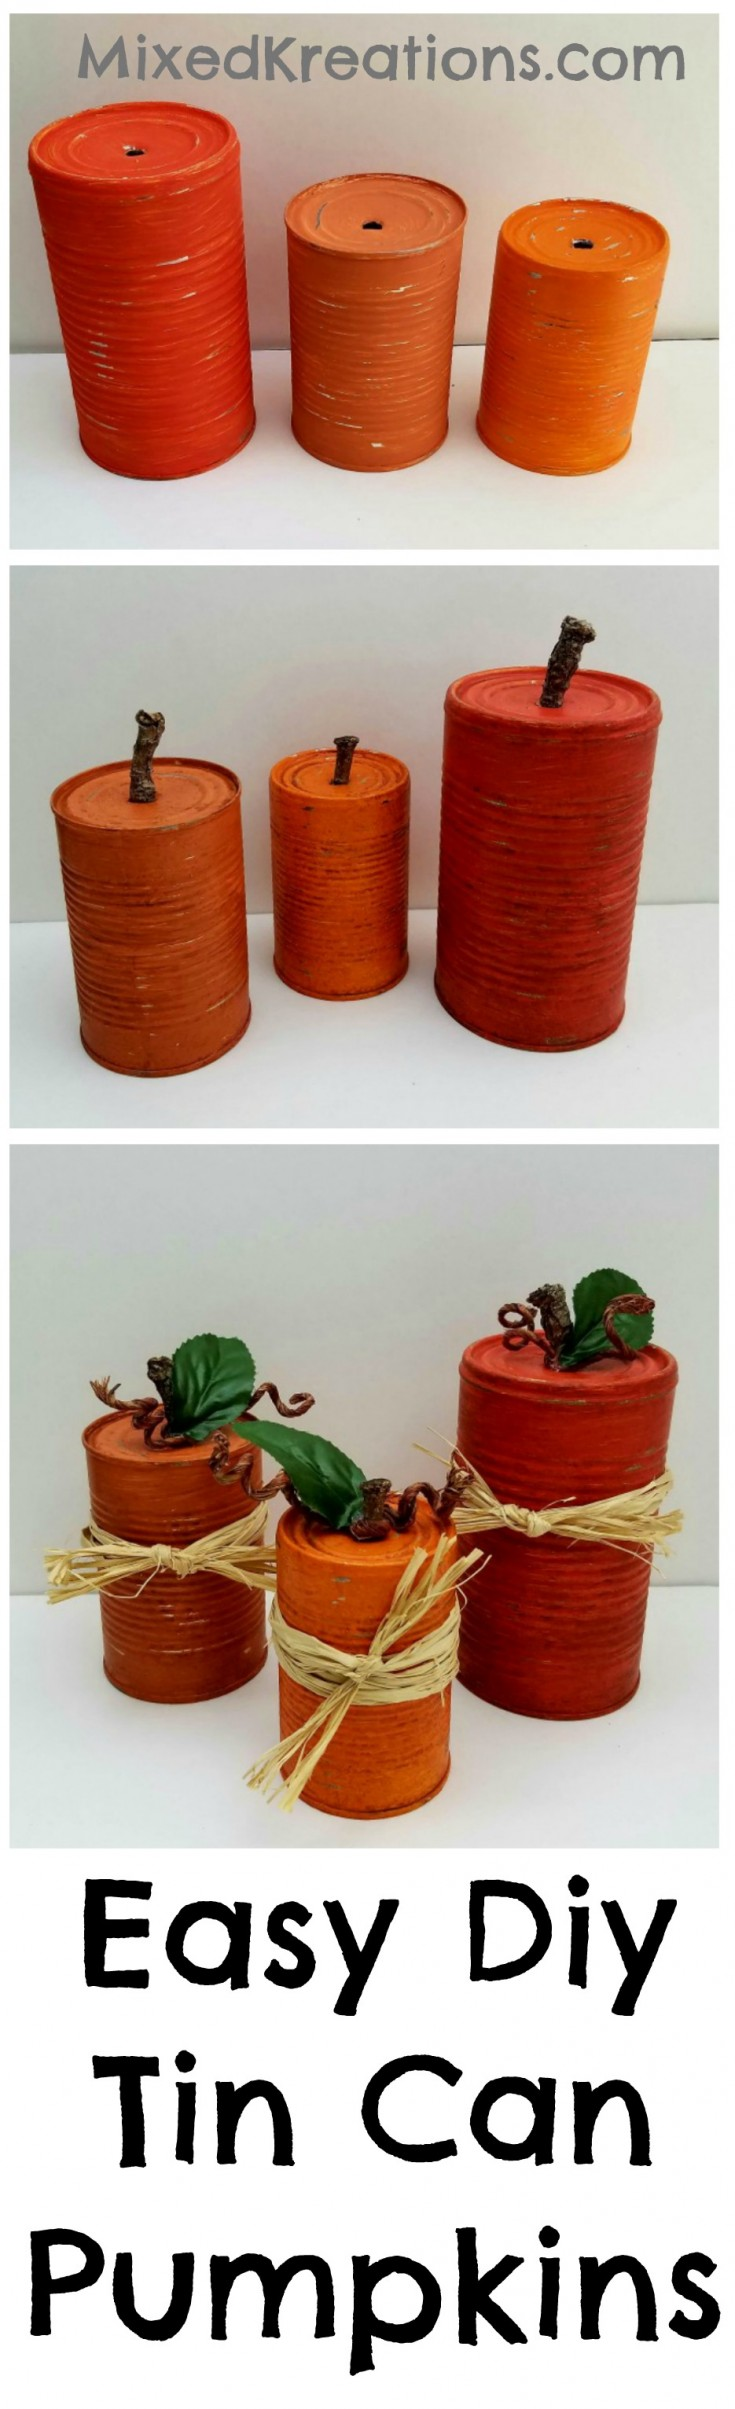 How to make Diy tin can pumpkins | Repurpose empty cans into pumpkins for the holiday's #Repurposed #UpcycledCans #HolidayDecor #DiyPumpkins MixedKreations.com